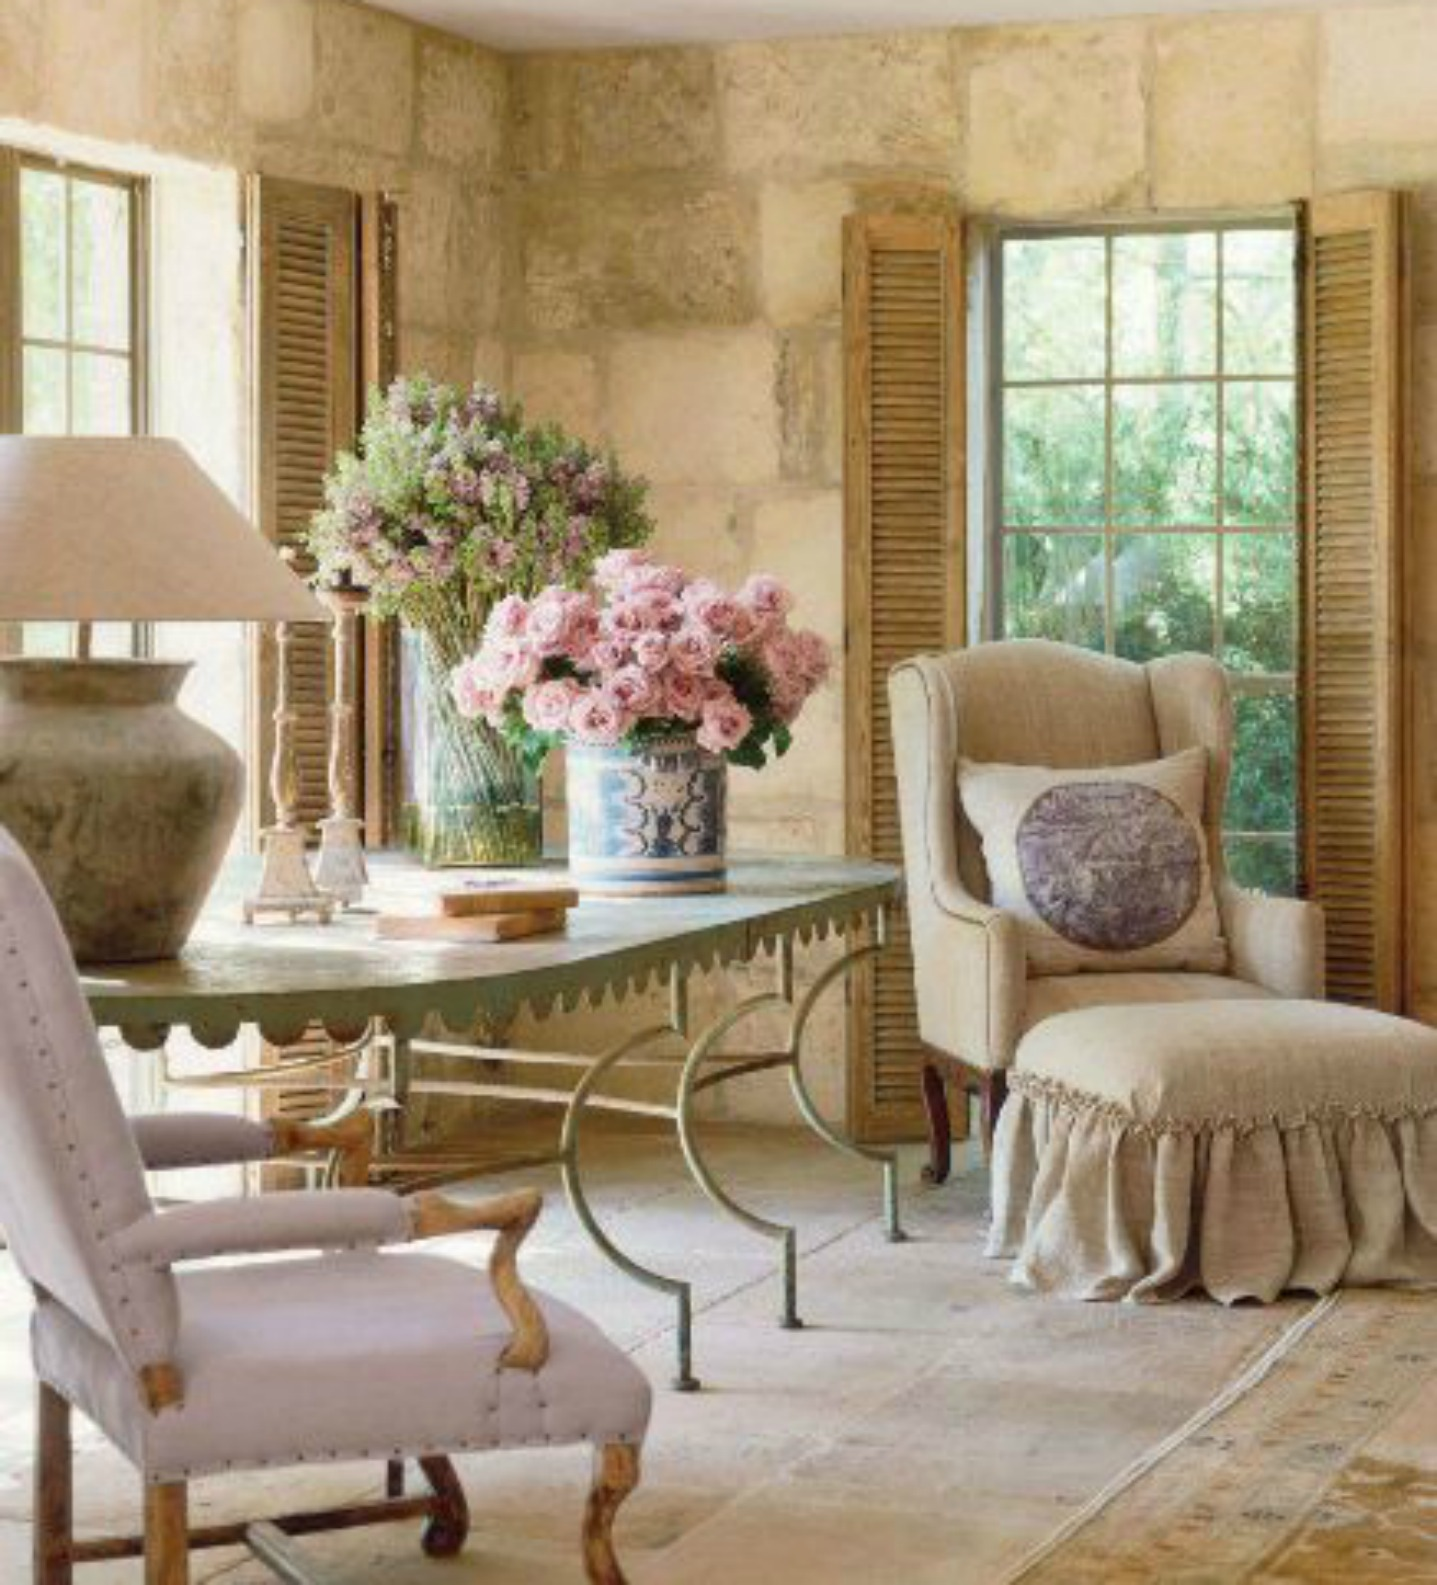 French farmhouse living room with antiques, limestone, and shutters. Design by Pamela Pierce. #chateaudomingue #frenchcountry #reclaimedstone